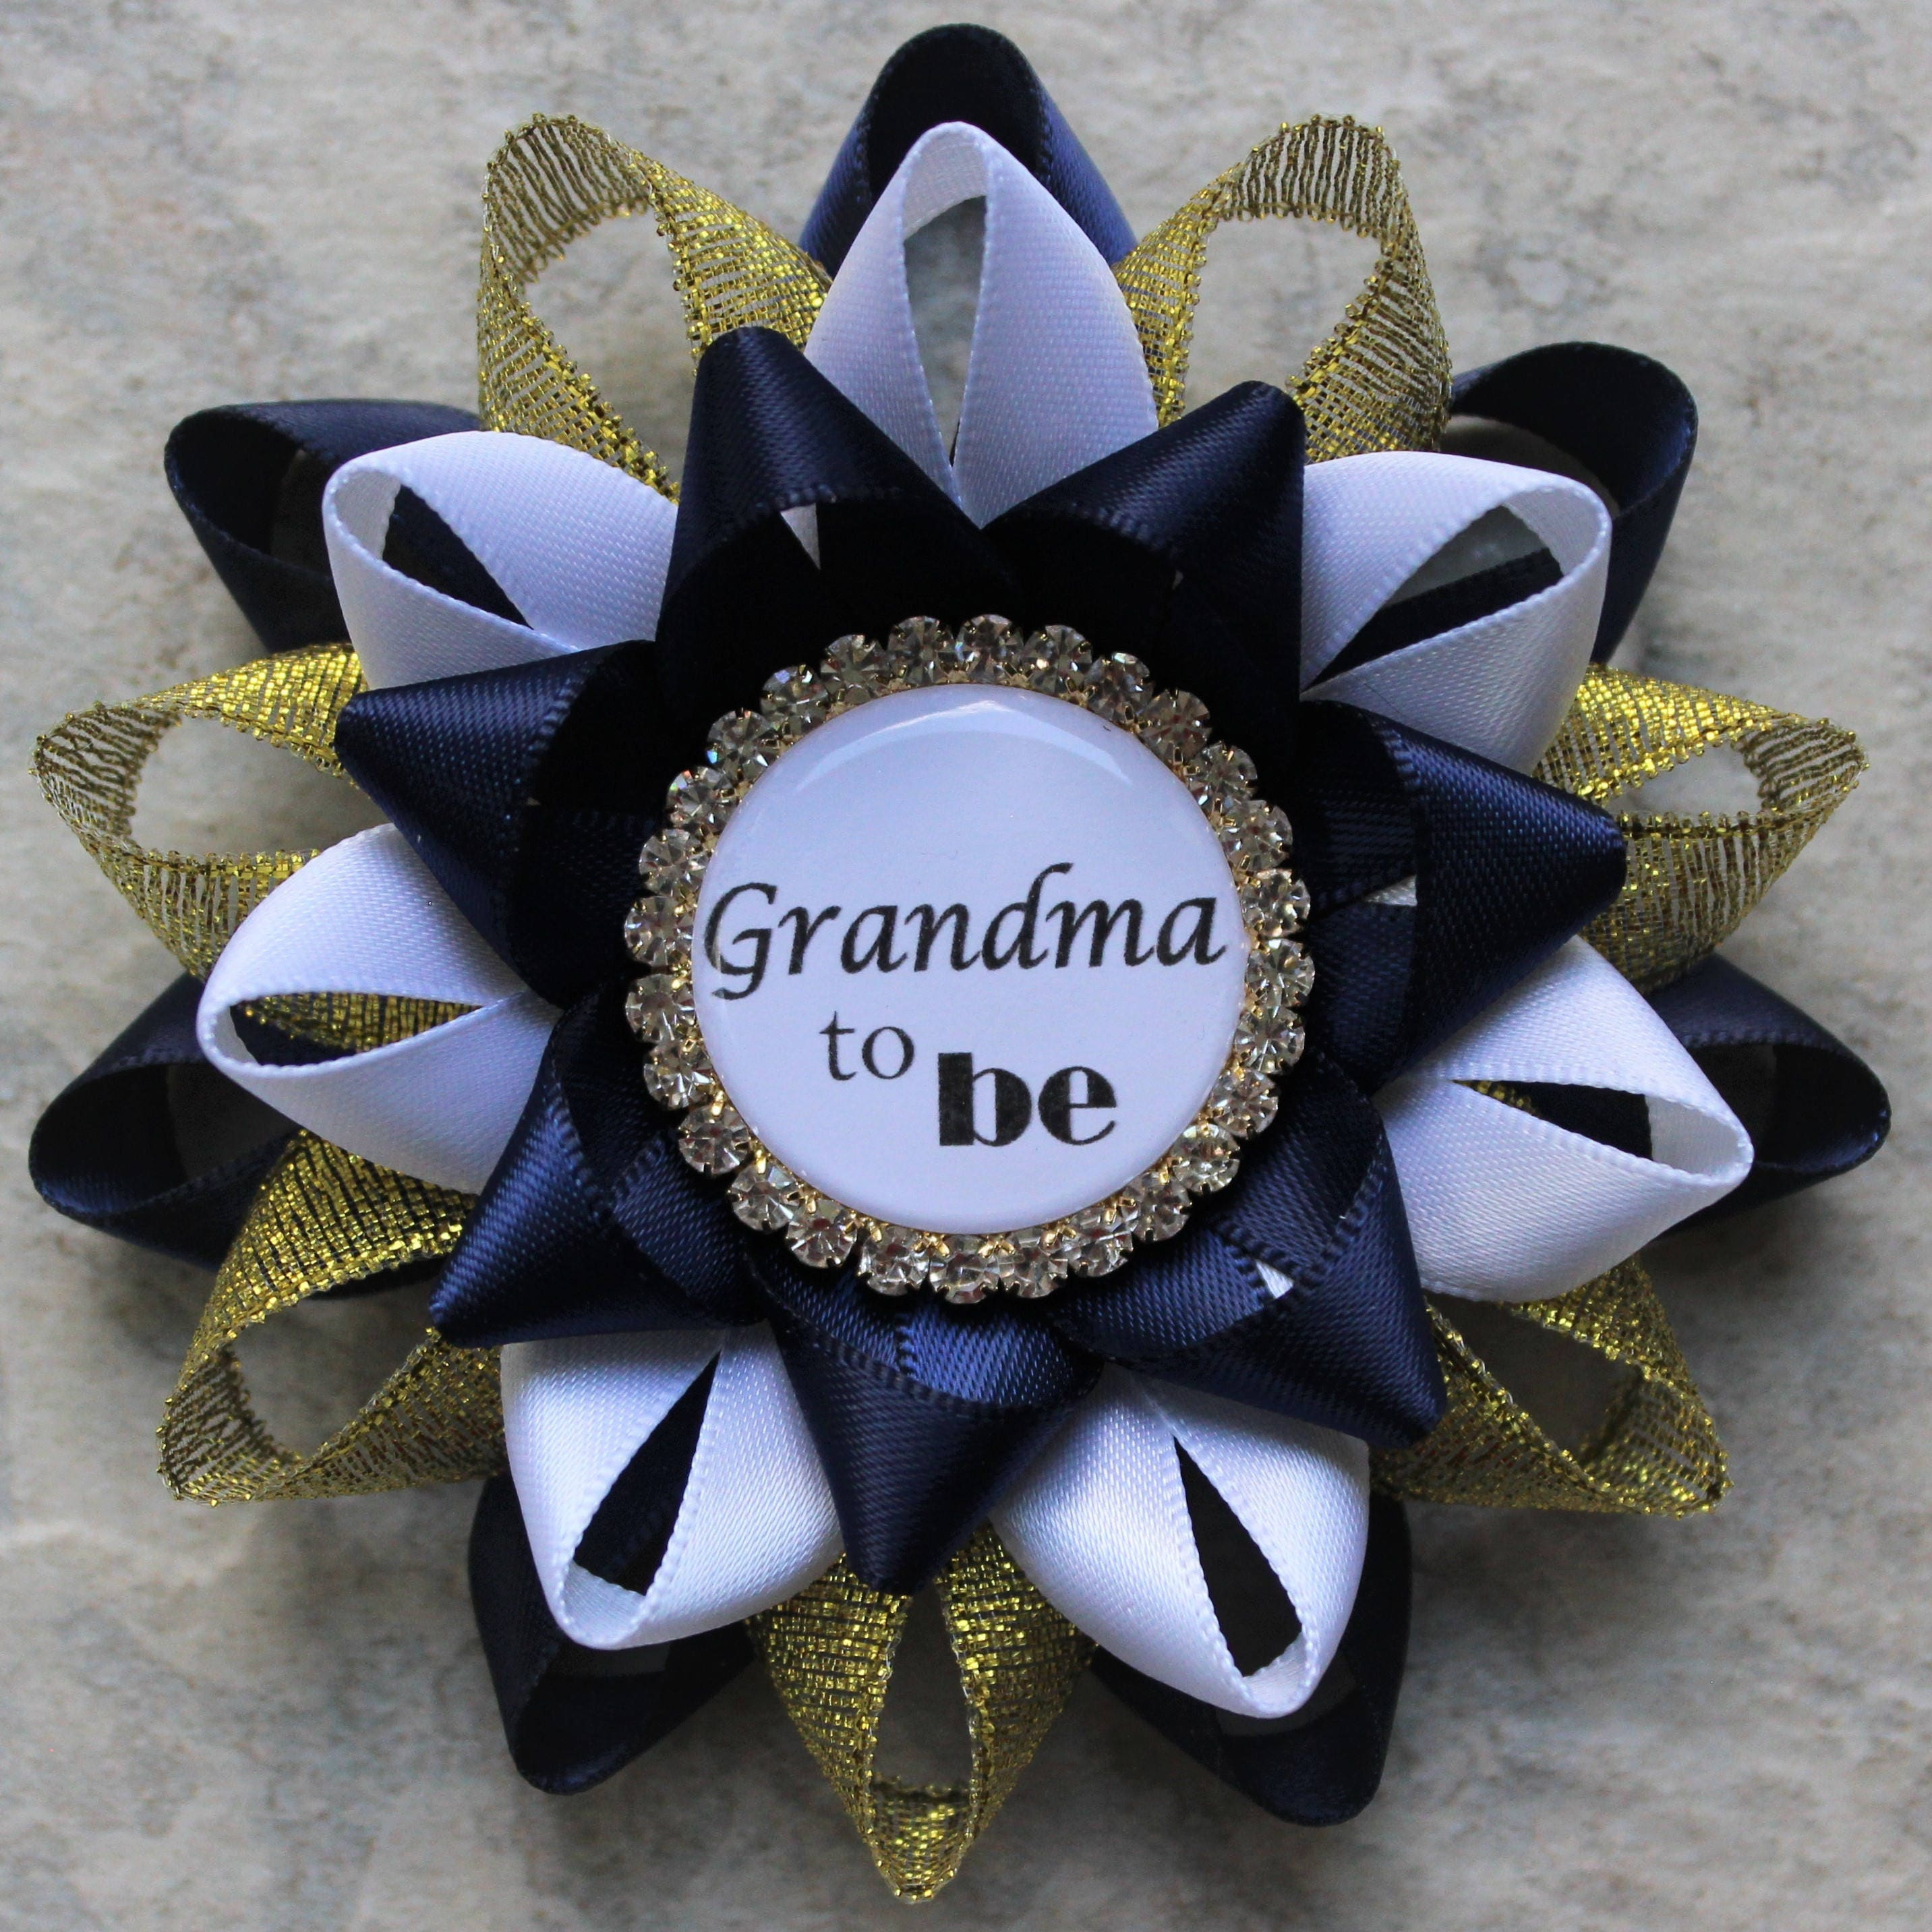 Royal Baby Shower Decorations, Little Prince Baby Boy Shower, Navy Blue And  Gold, White, Royal Prince Baby Shower Theme, Mommy Corsage Pin